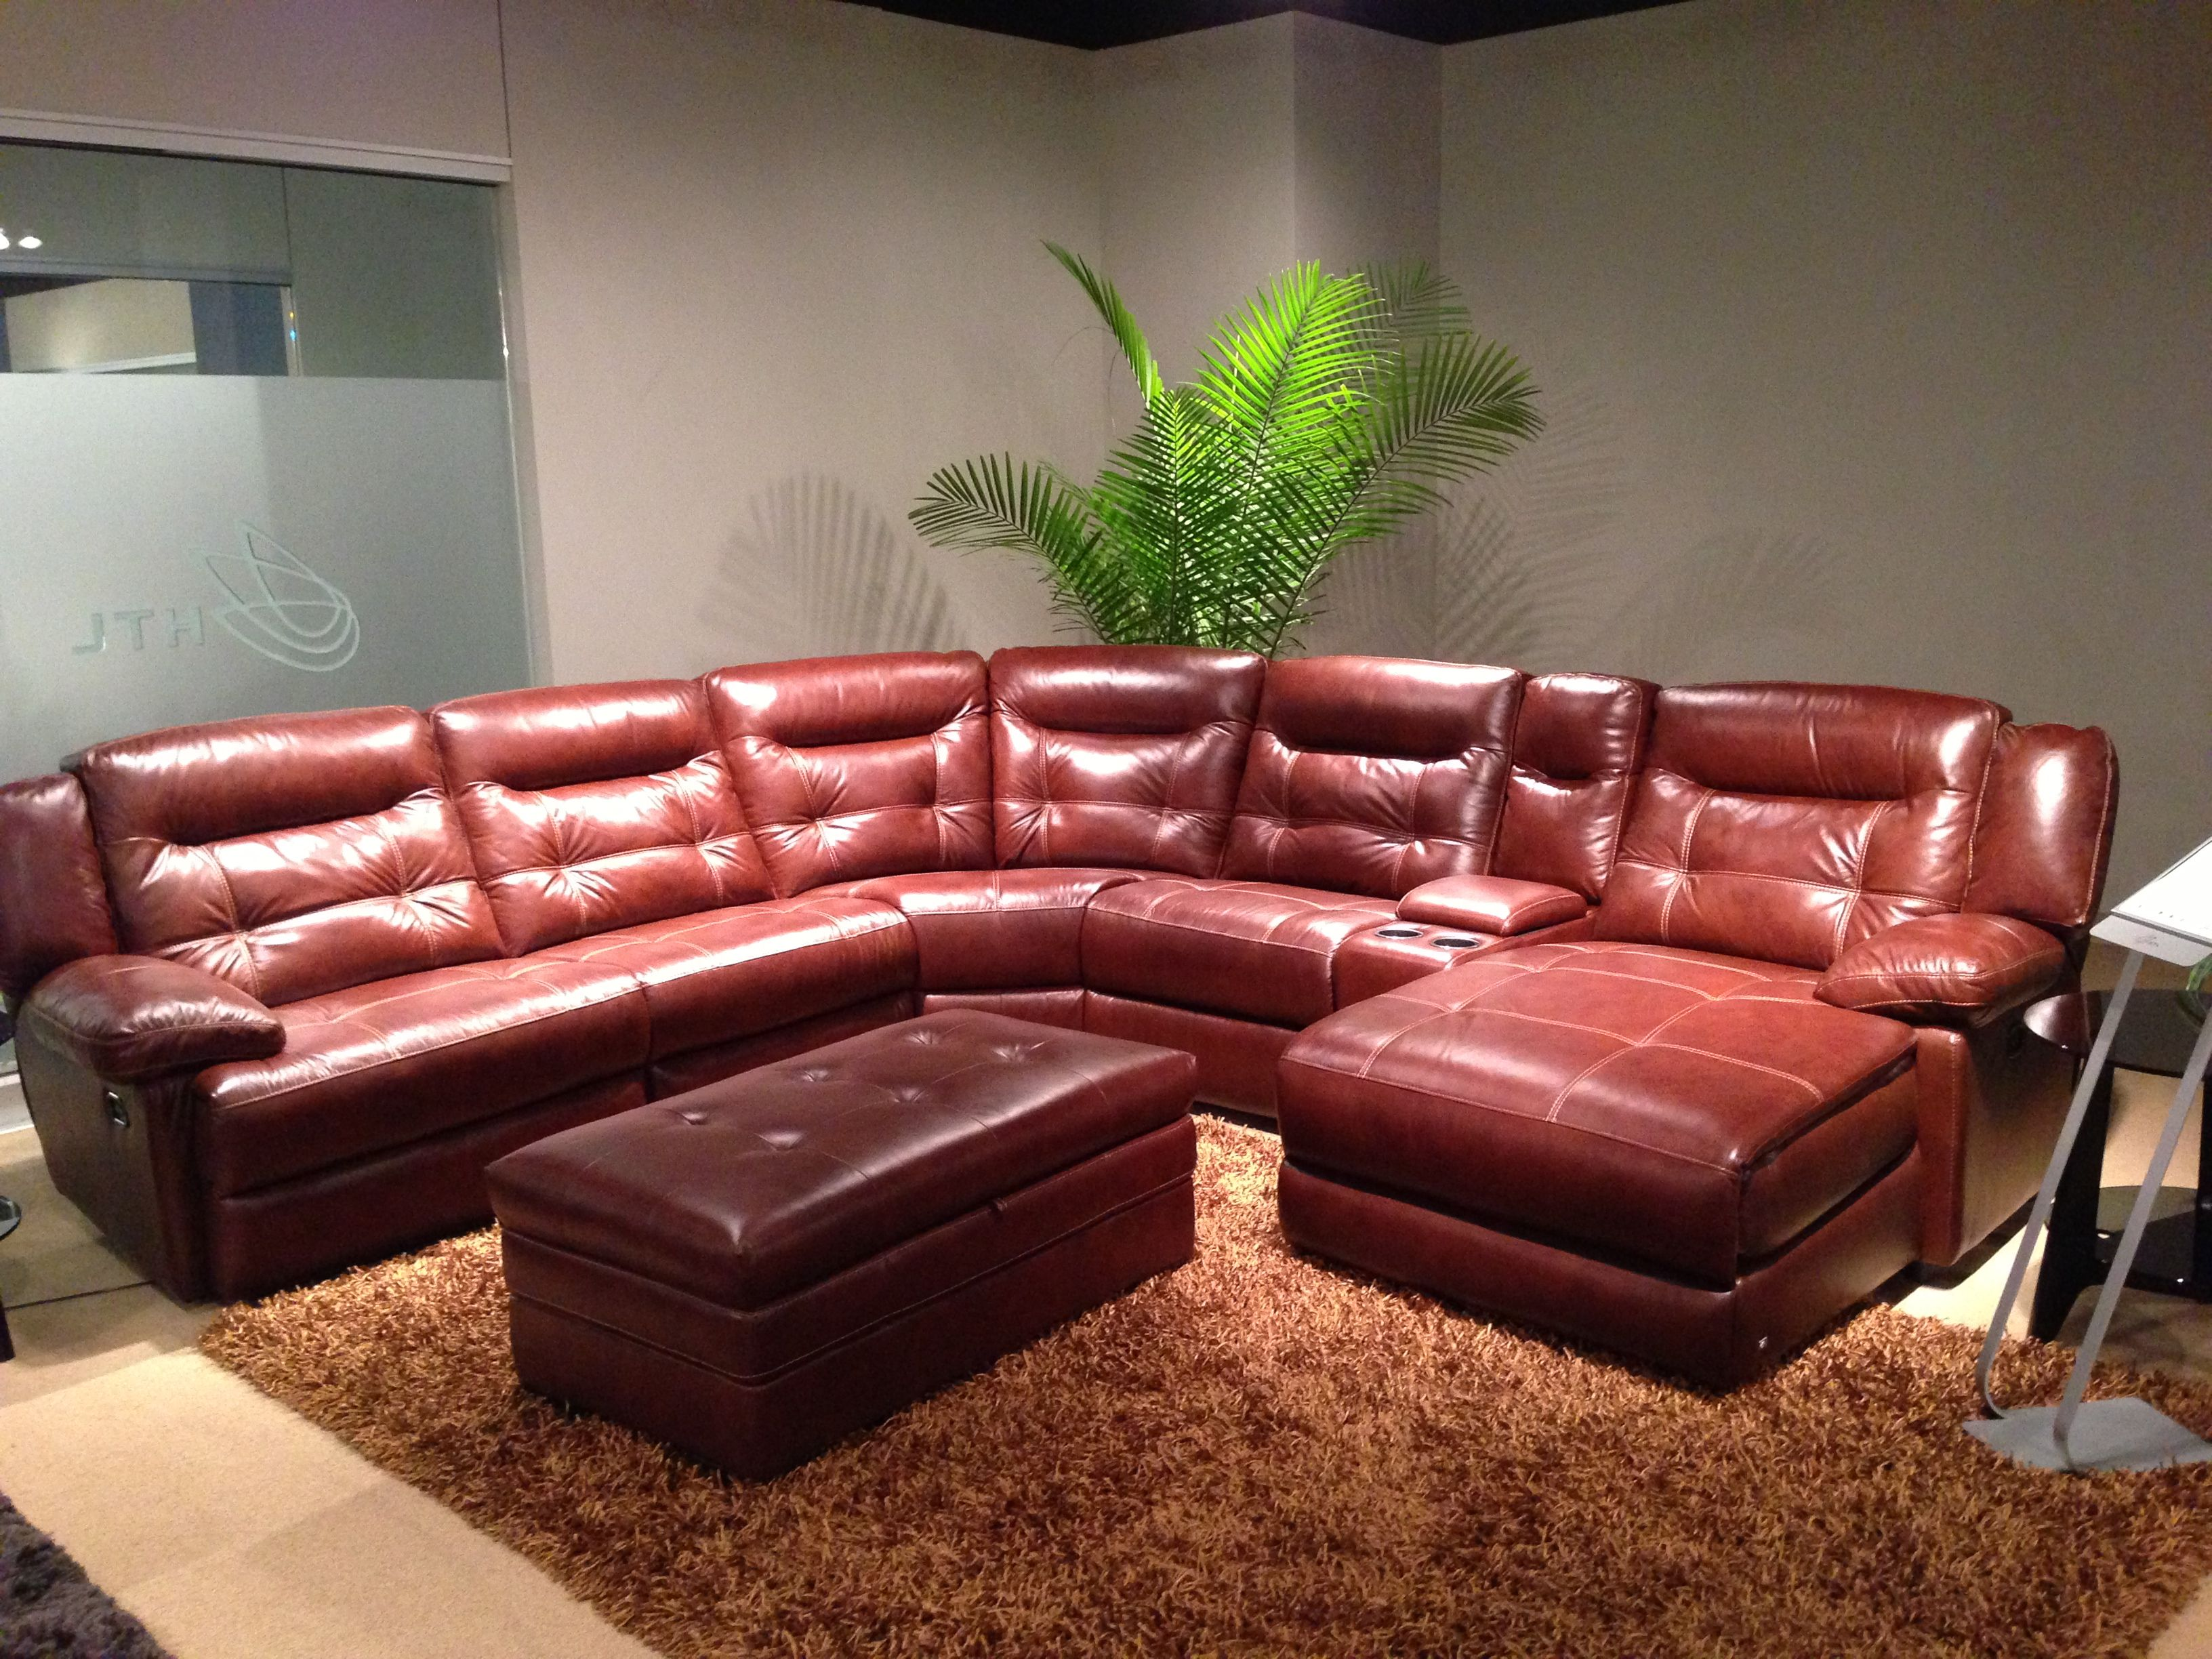 HTL Manhattan Leather Sectional Costco | For the Home | Pinterest | Leather sectional and Manhattan : htl sectional - Sectionals, Sofas & Couches